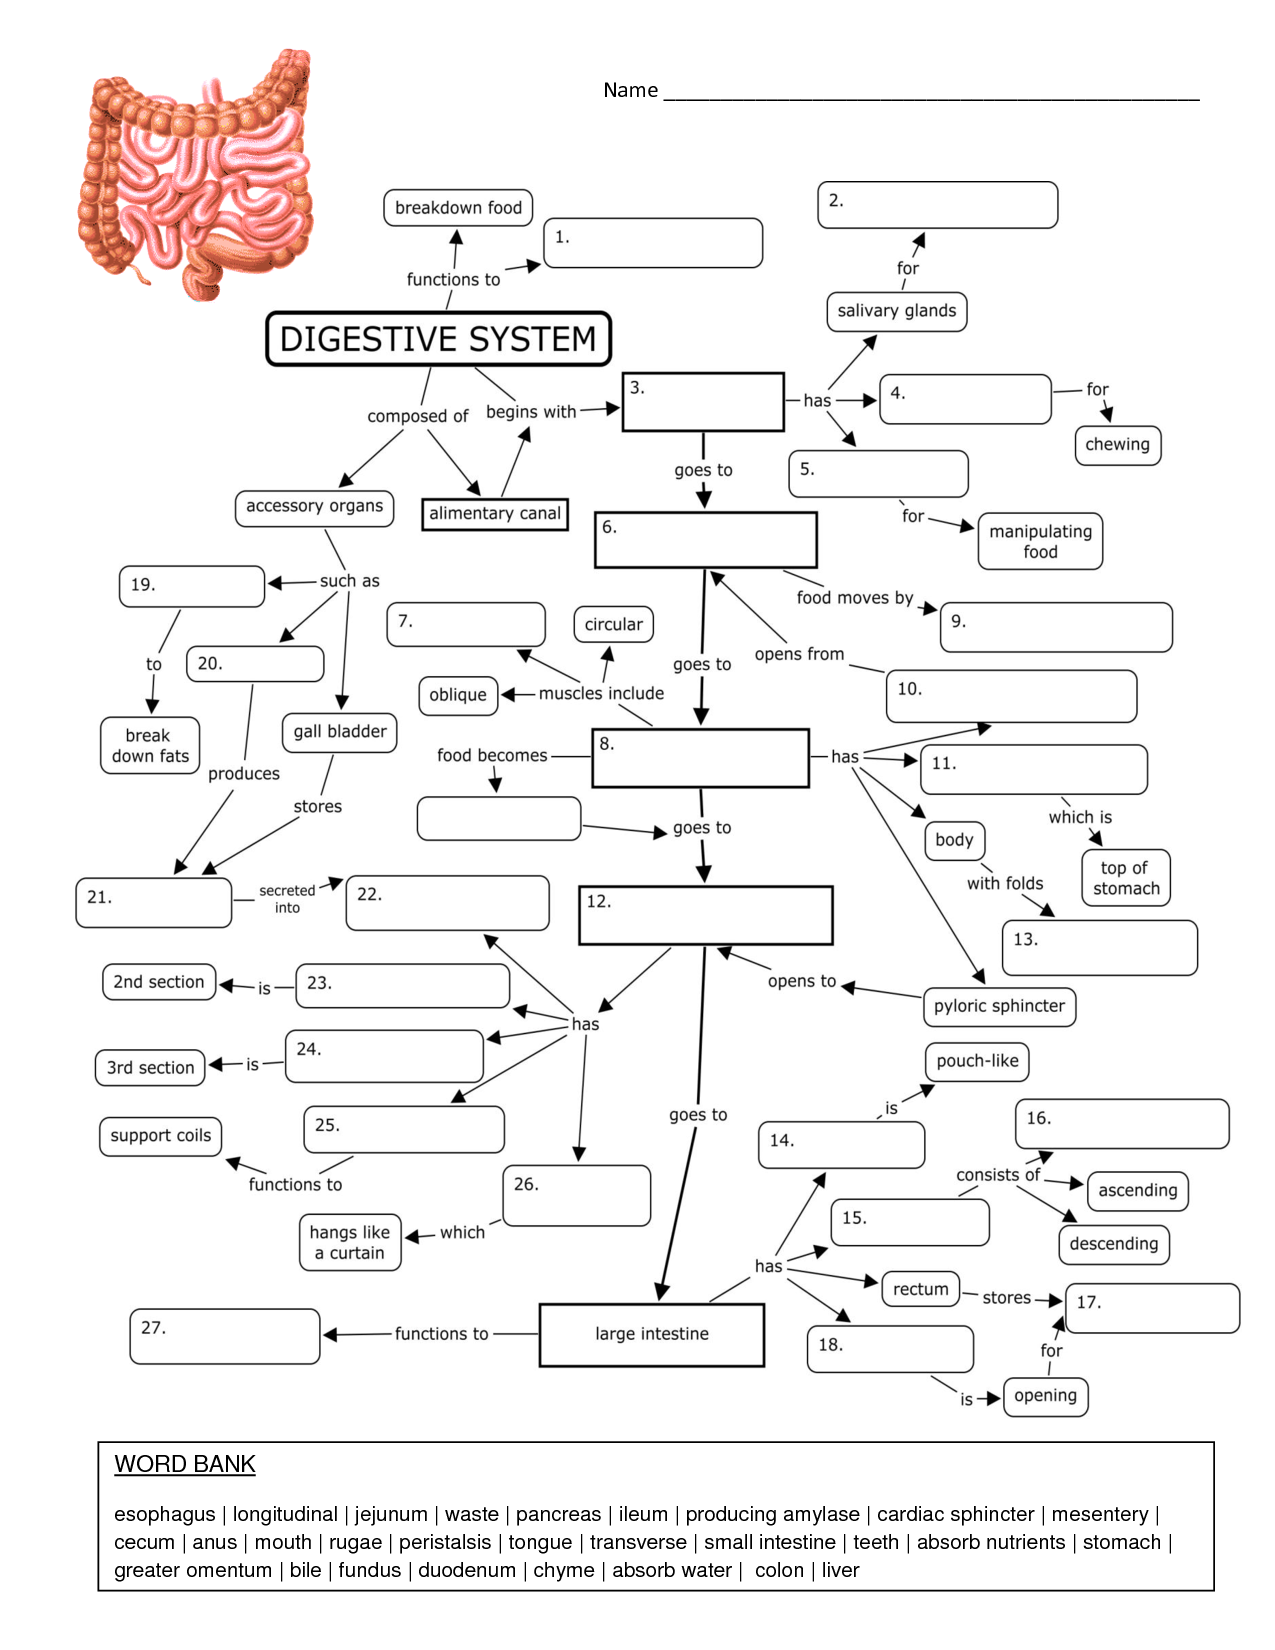 Cstoc Docs Digestion Concept Map